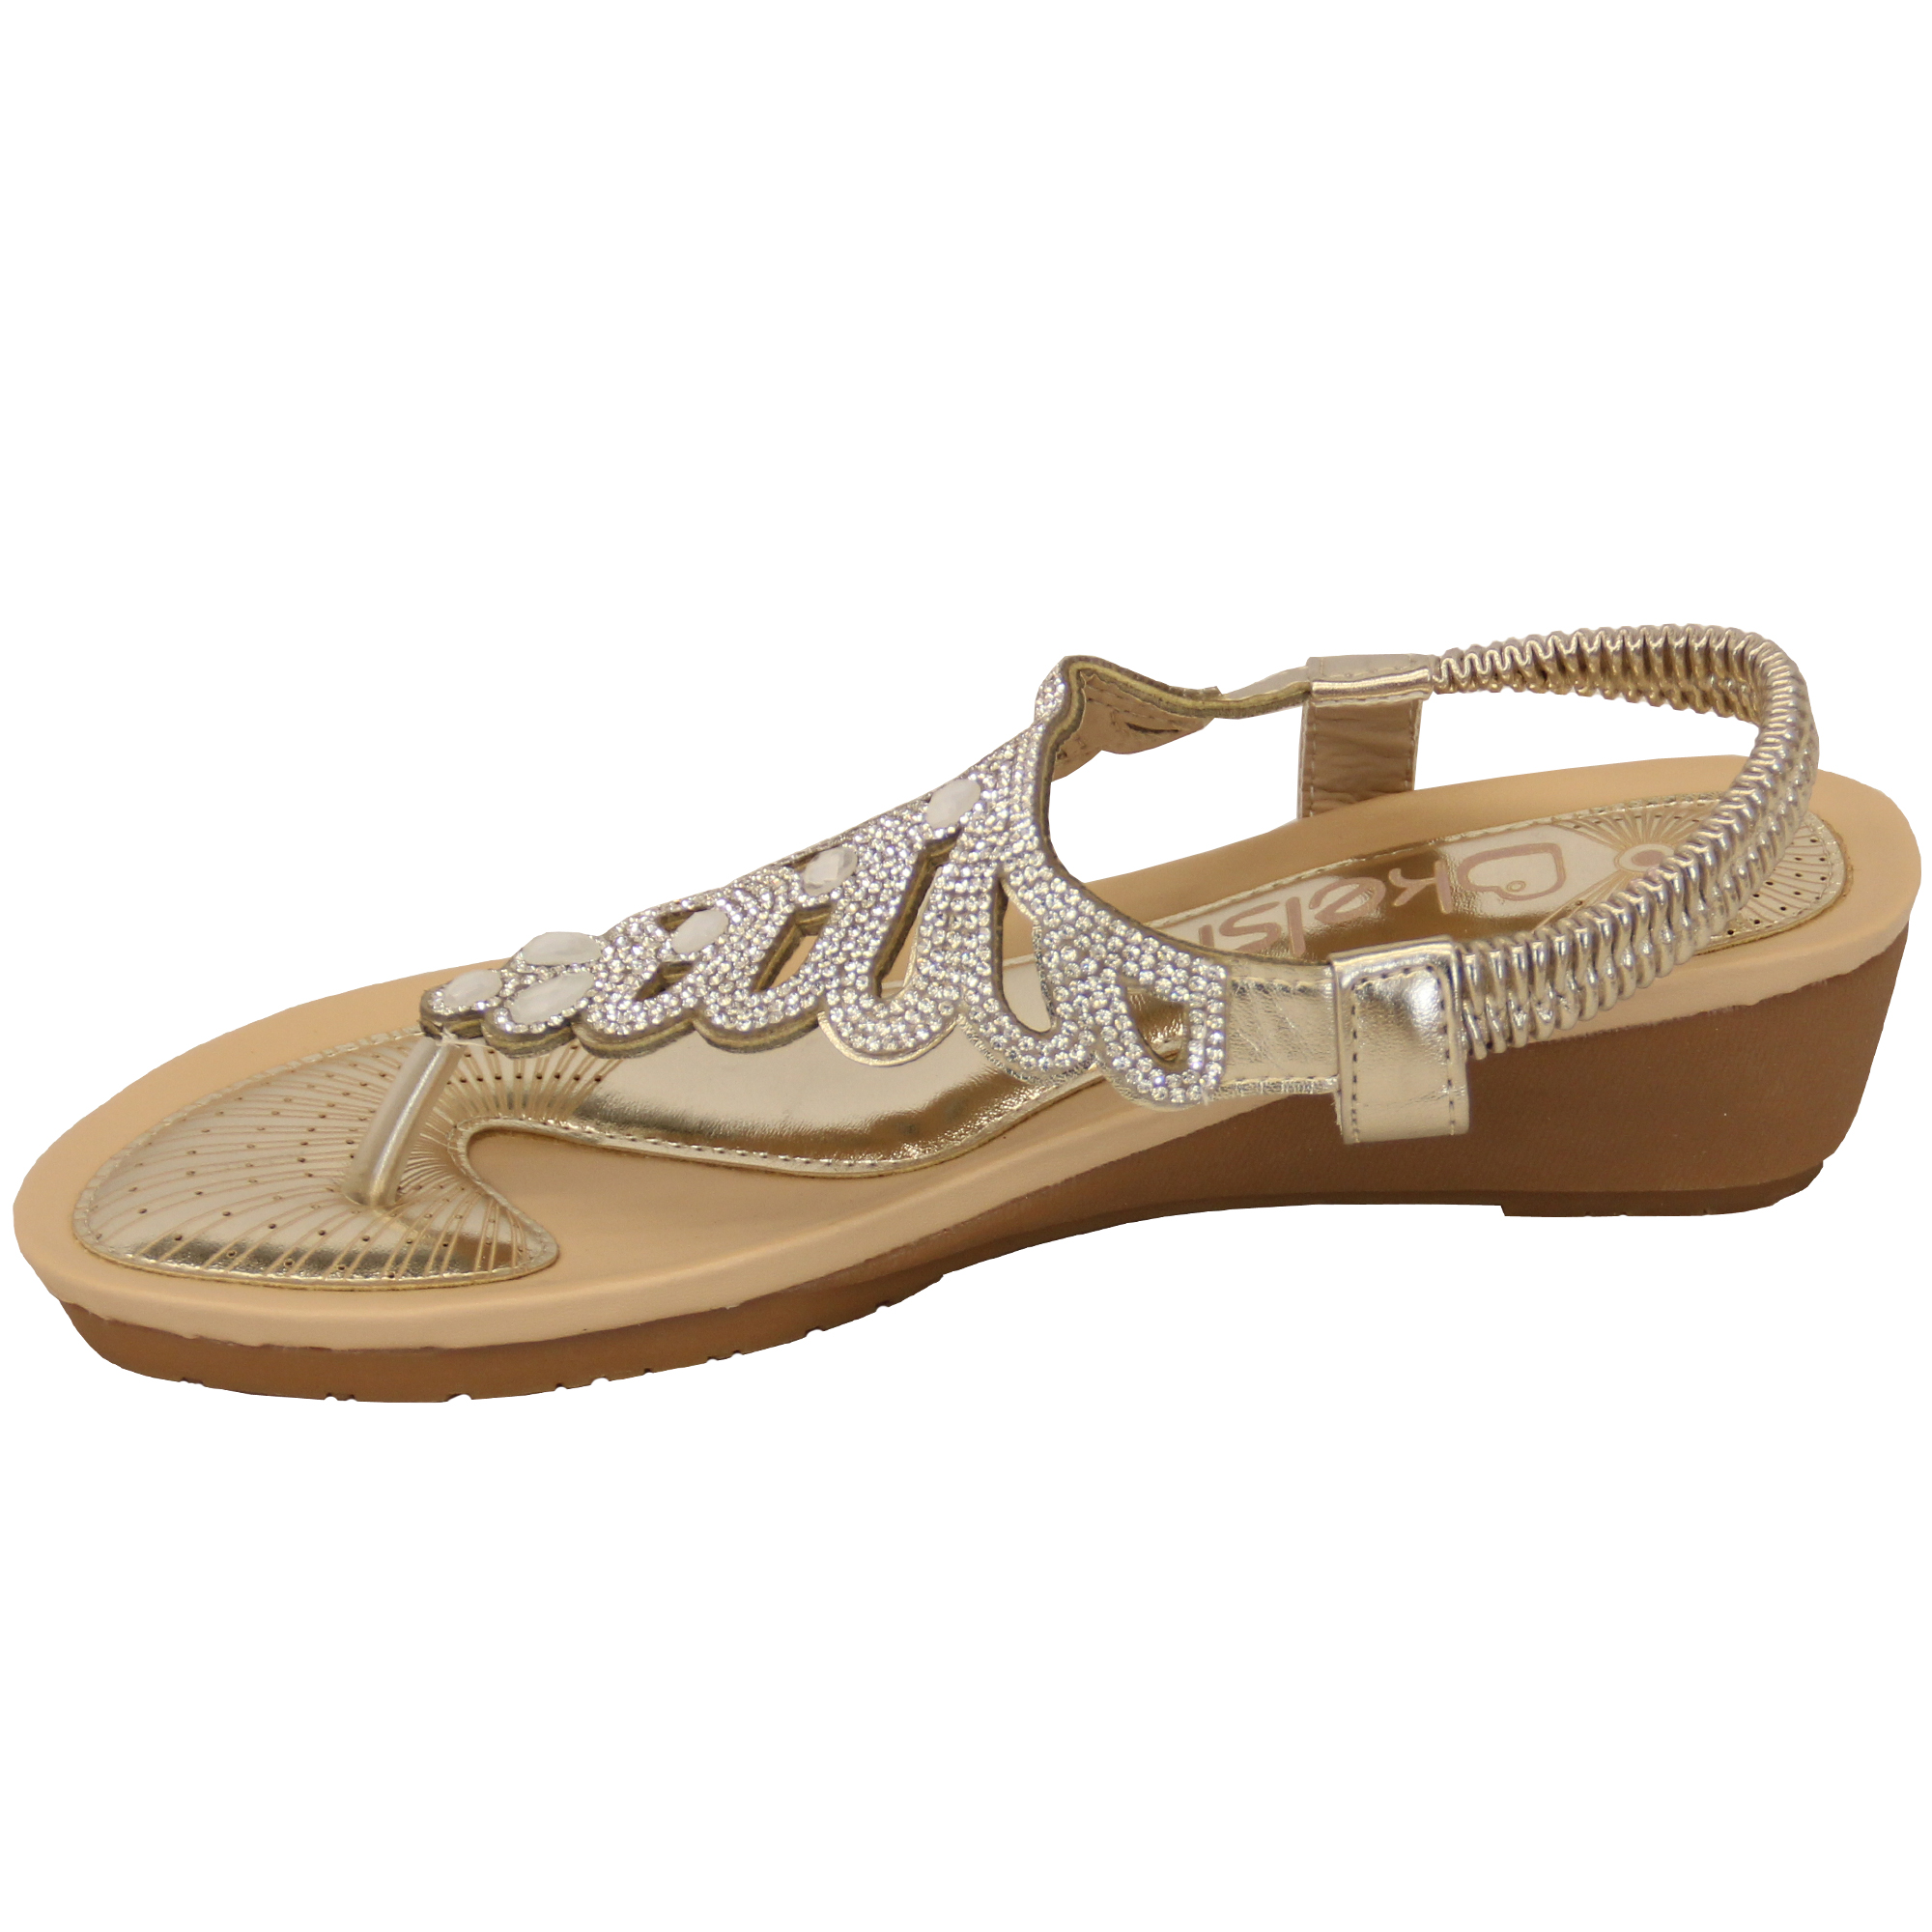 Ladies-Sandals-Kelsi-Womens-Diamante-Slip-On-Toe-Post-Shoes-Casual-Fashion-New thumbnail 18